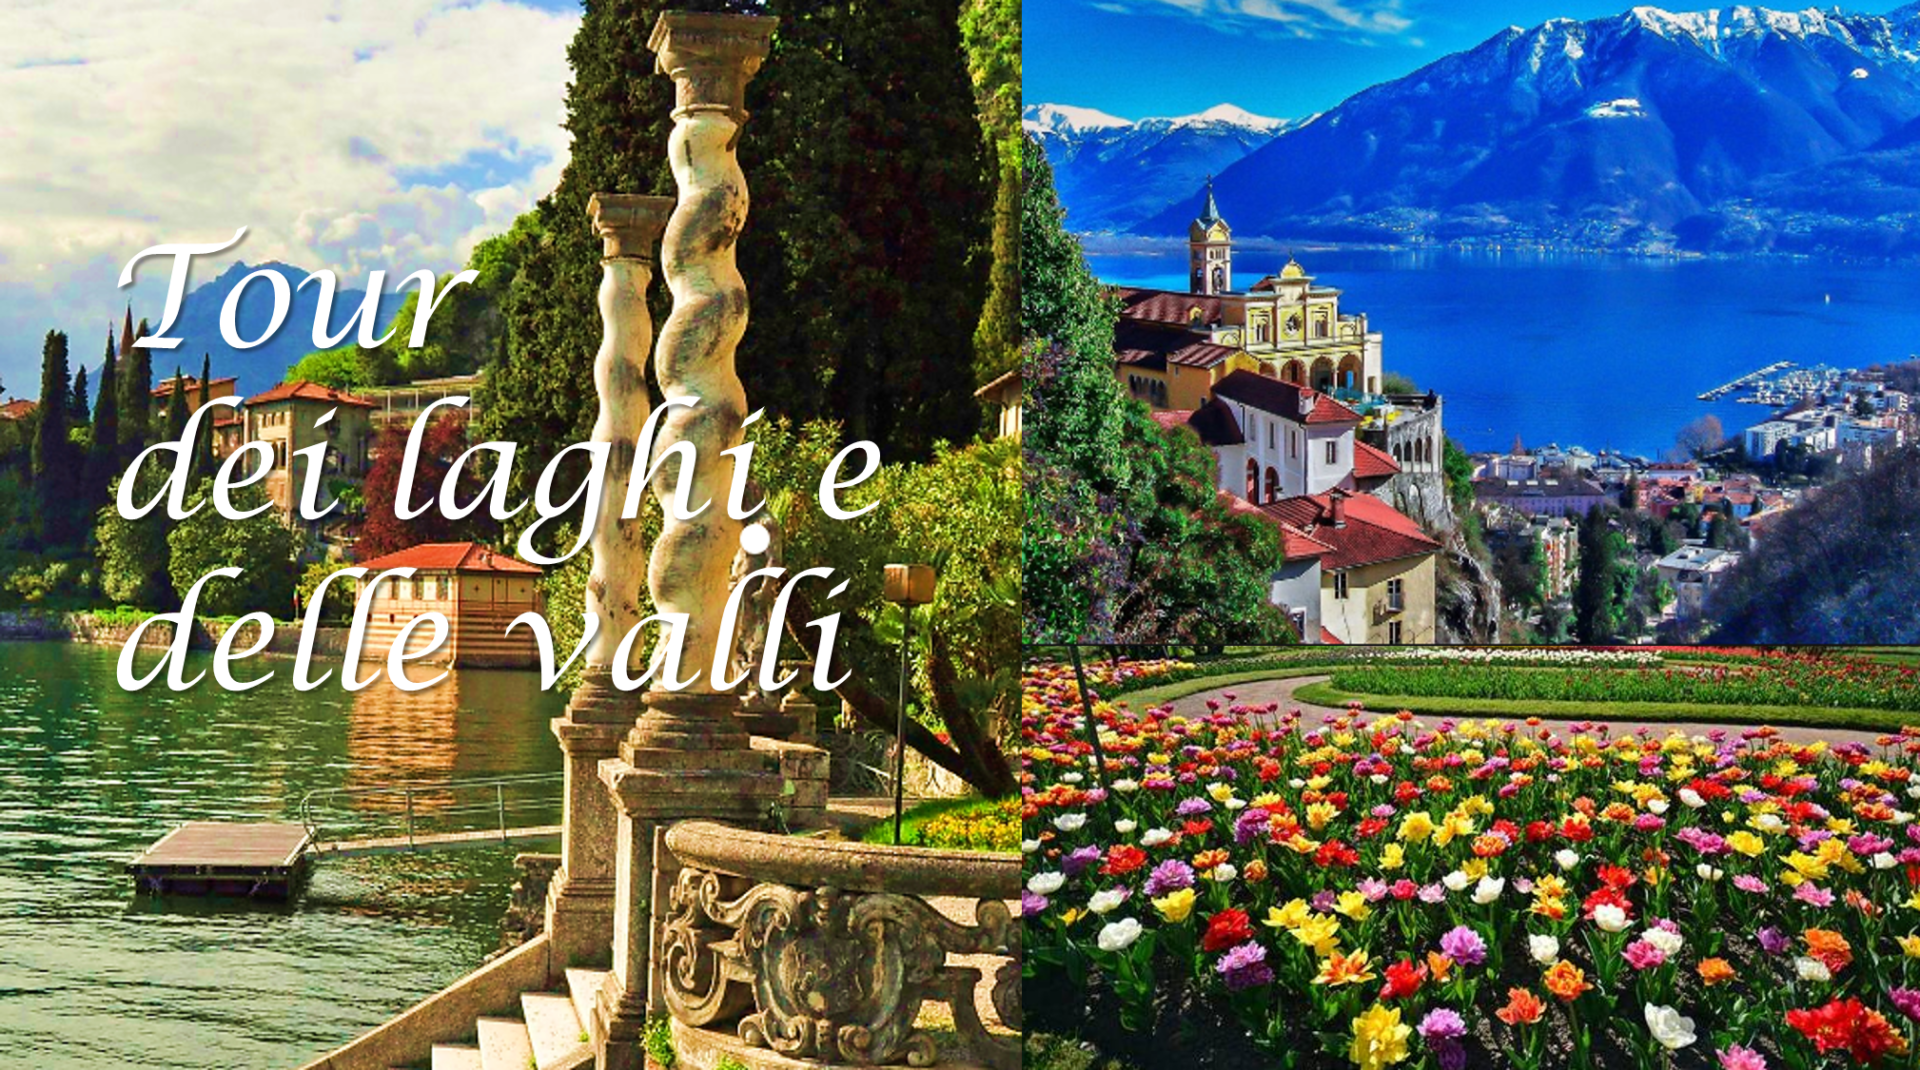 tour-laghi-e-valli